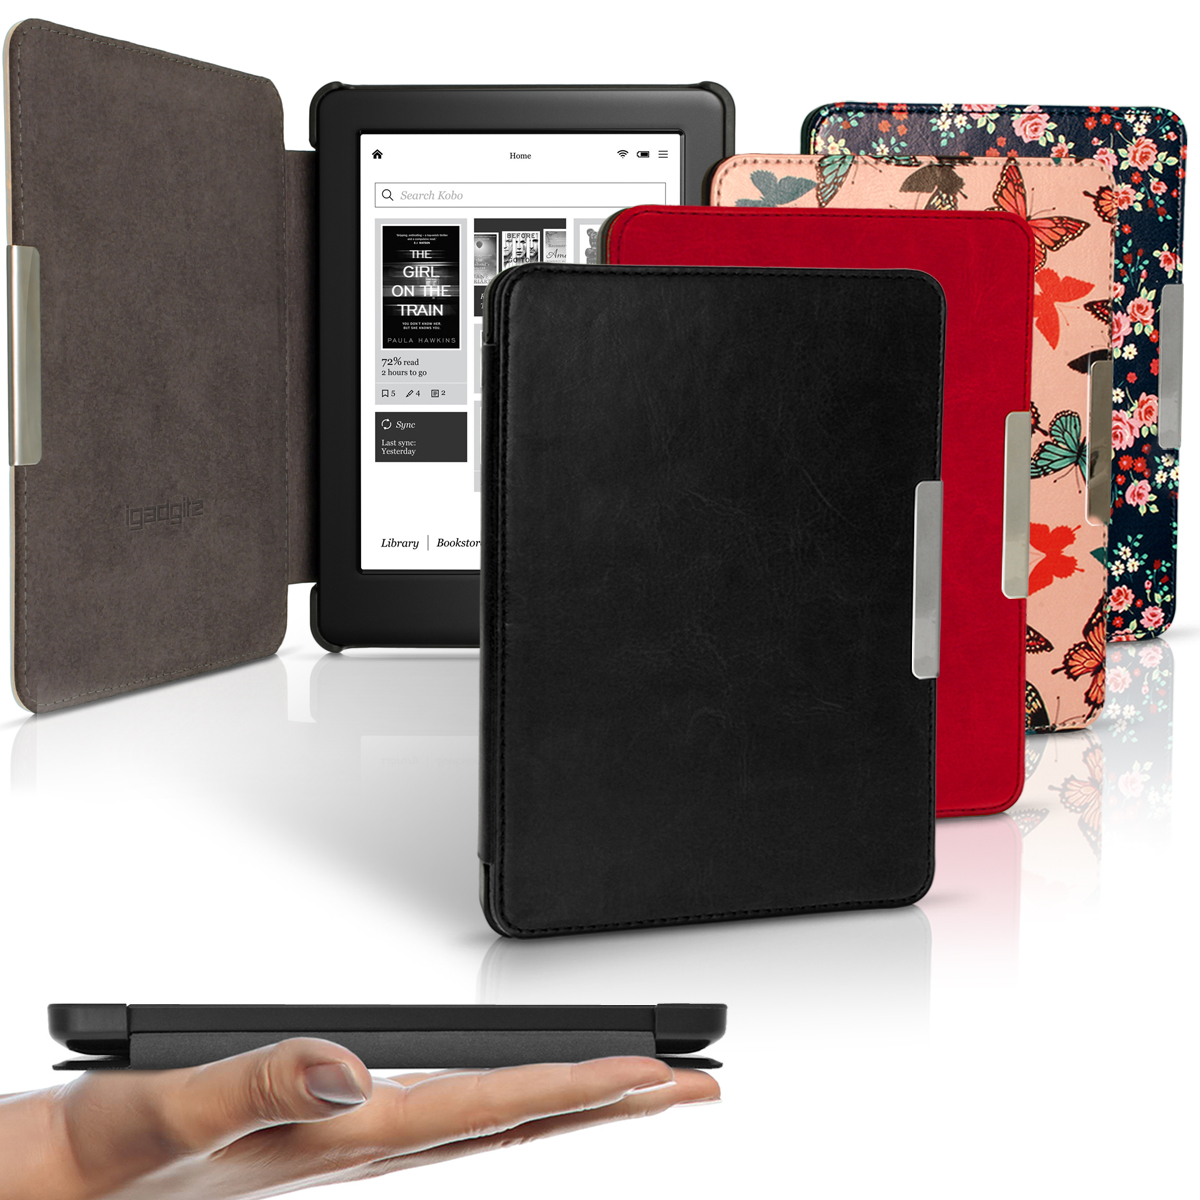 iGadgitz Slim PU Leather Shell Case Cover for Kobo Glo HD, Kobo Touch 2 with Sleep Wake & Magnetic Closure